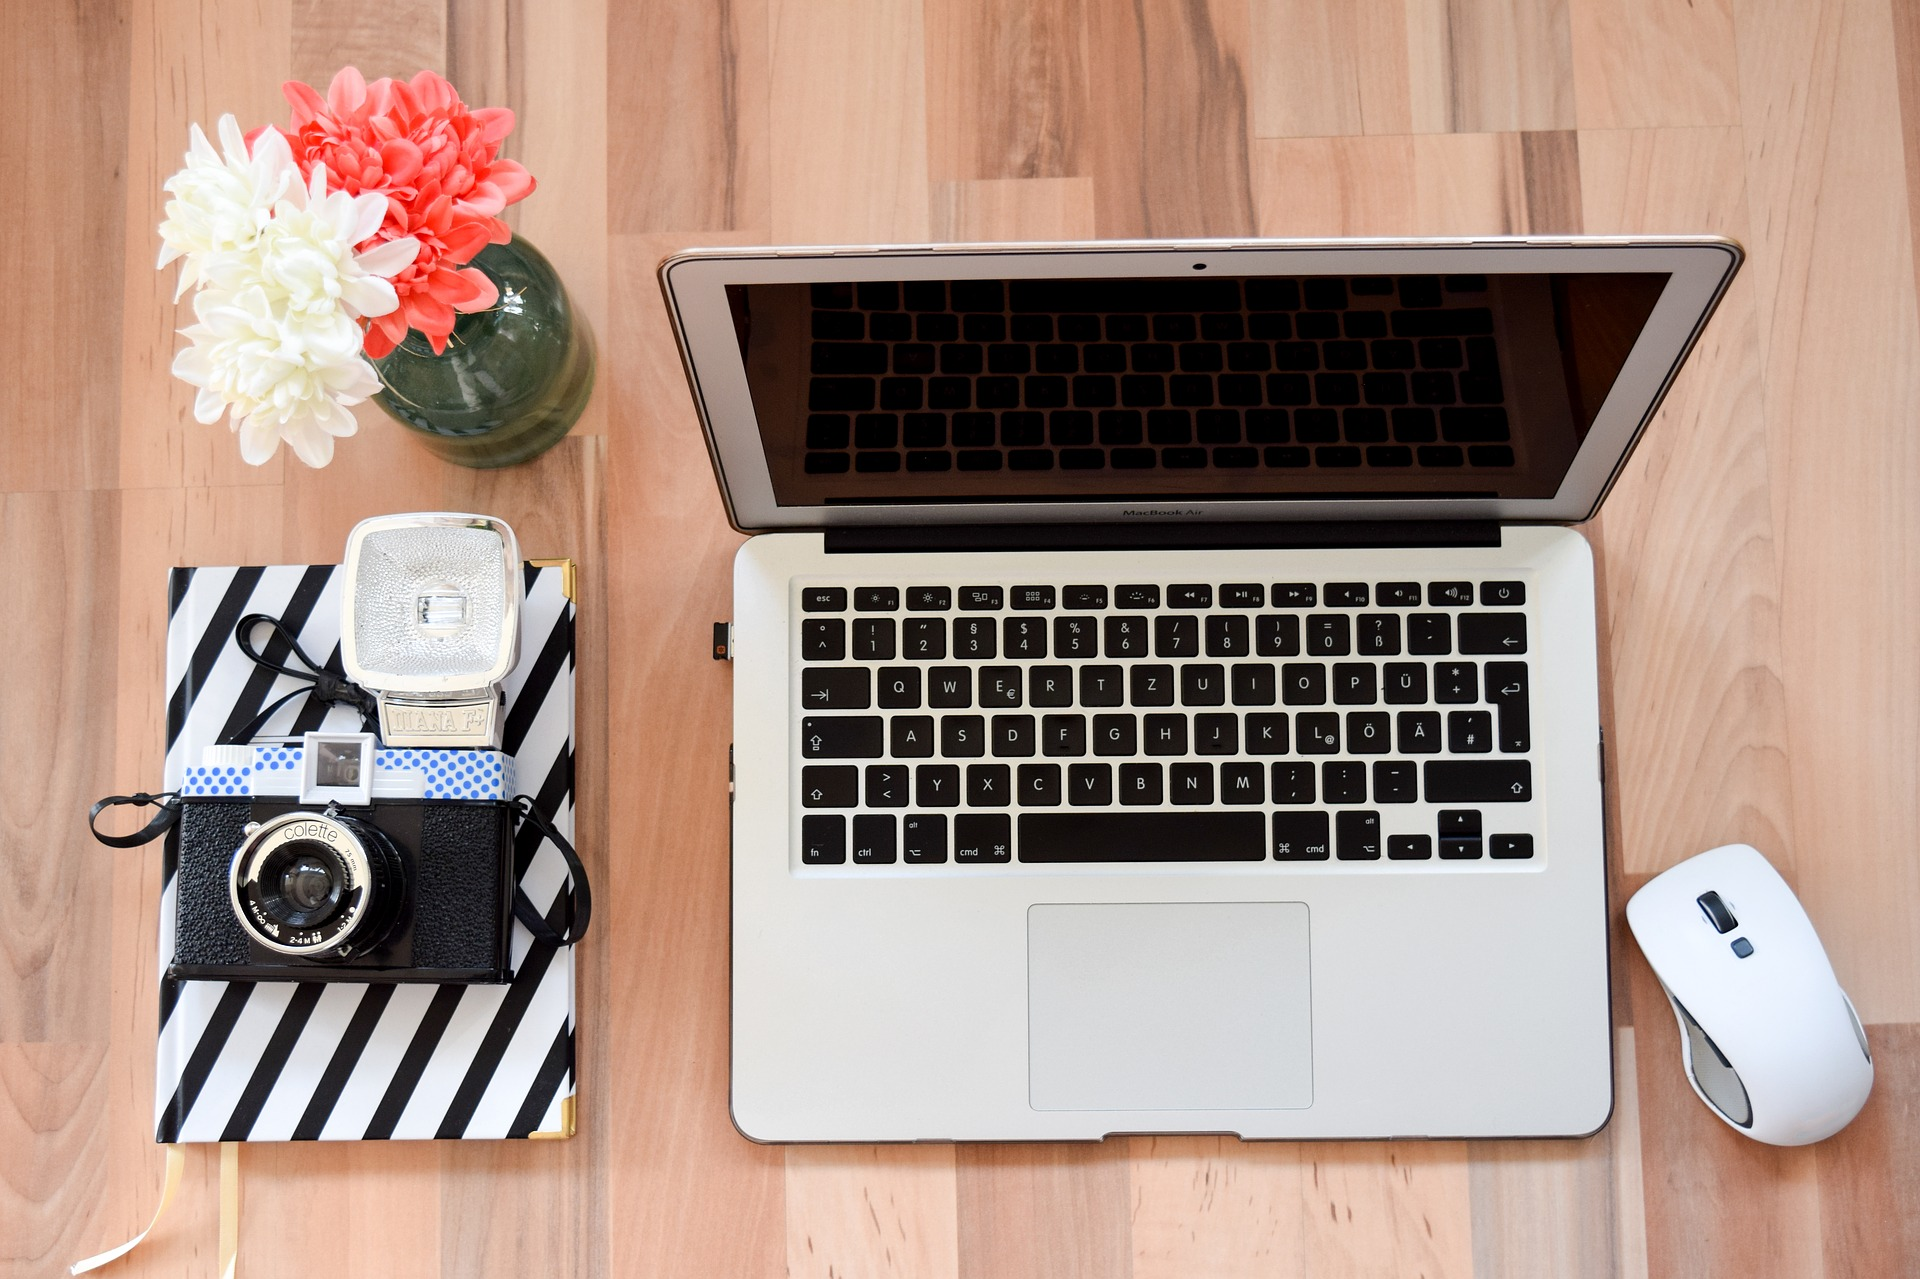 Get the lowdown on how to become a business seller on ebay and make money from home